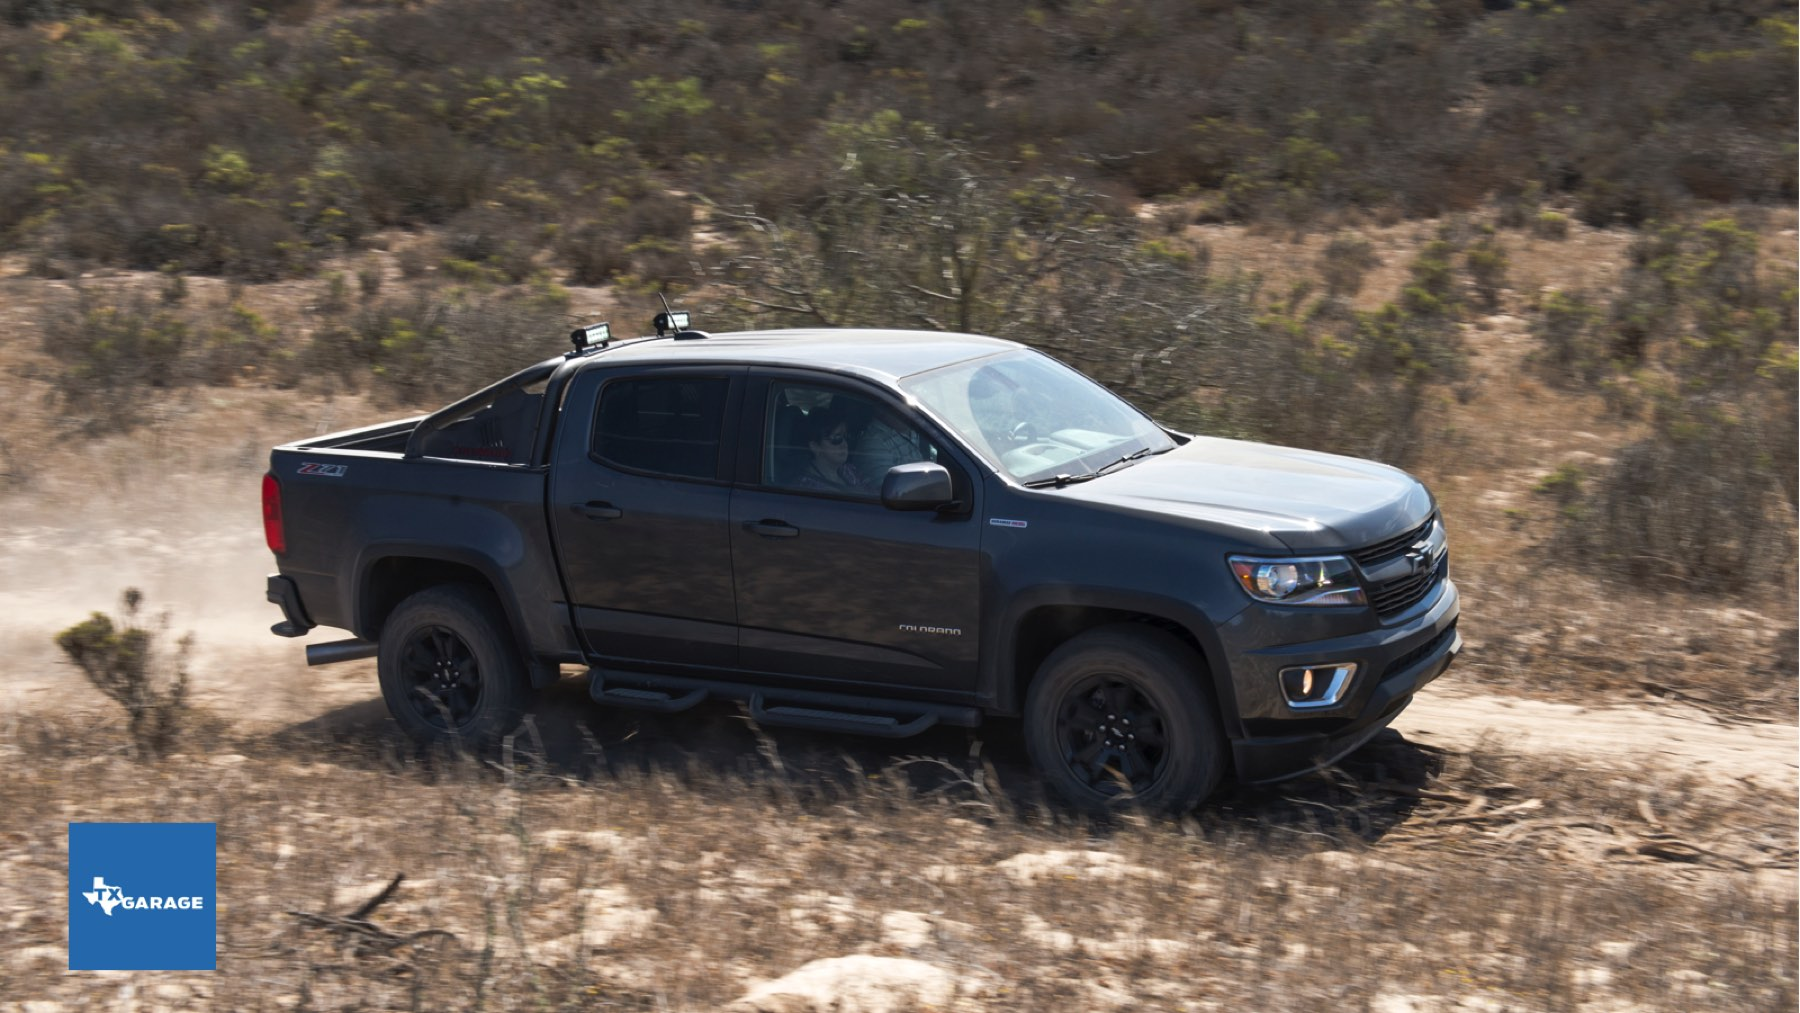 Chevrolet-Colorado-03-txGarage